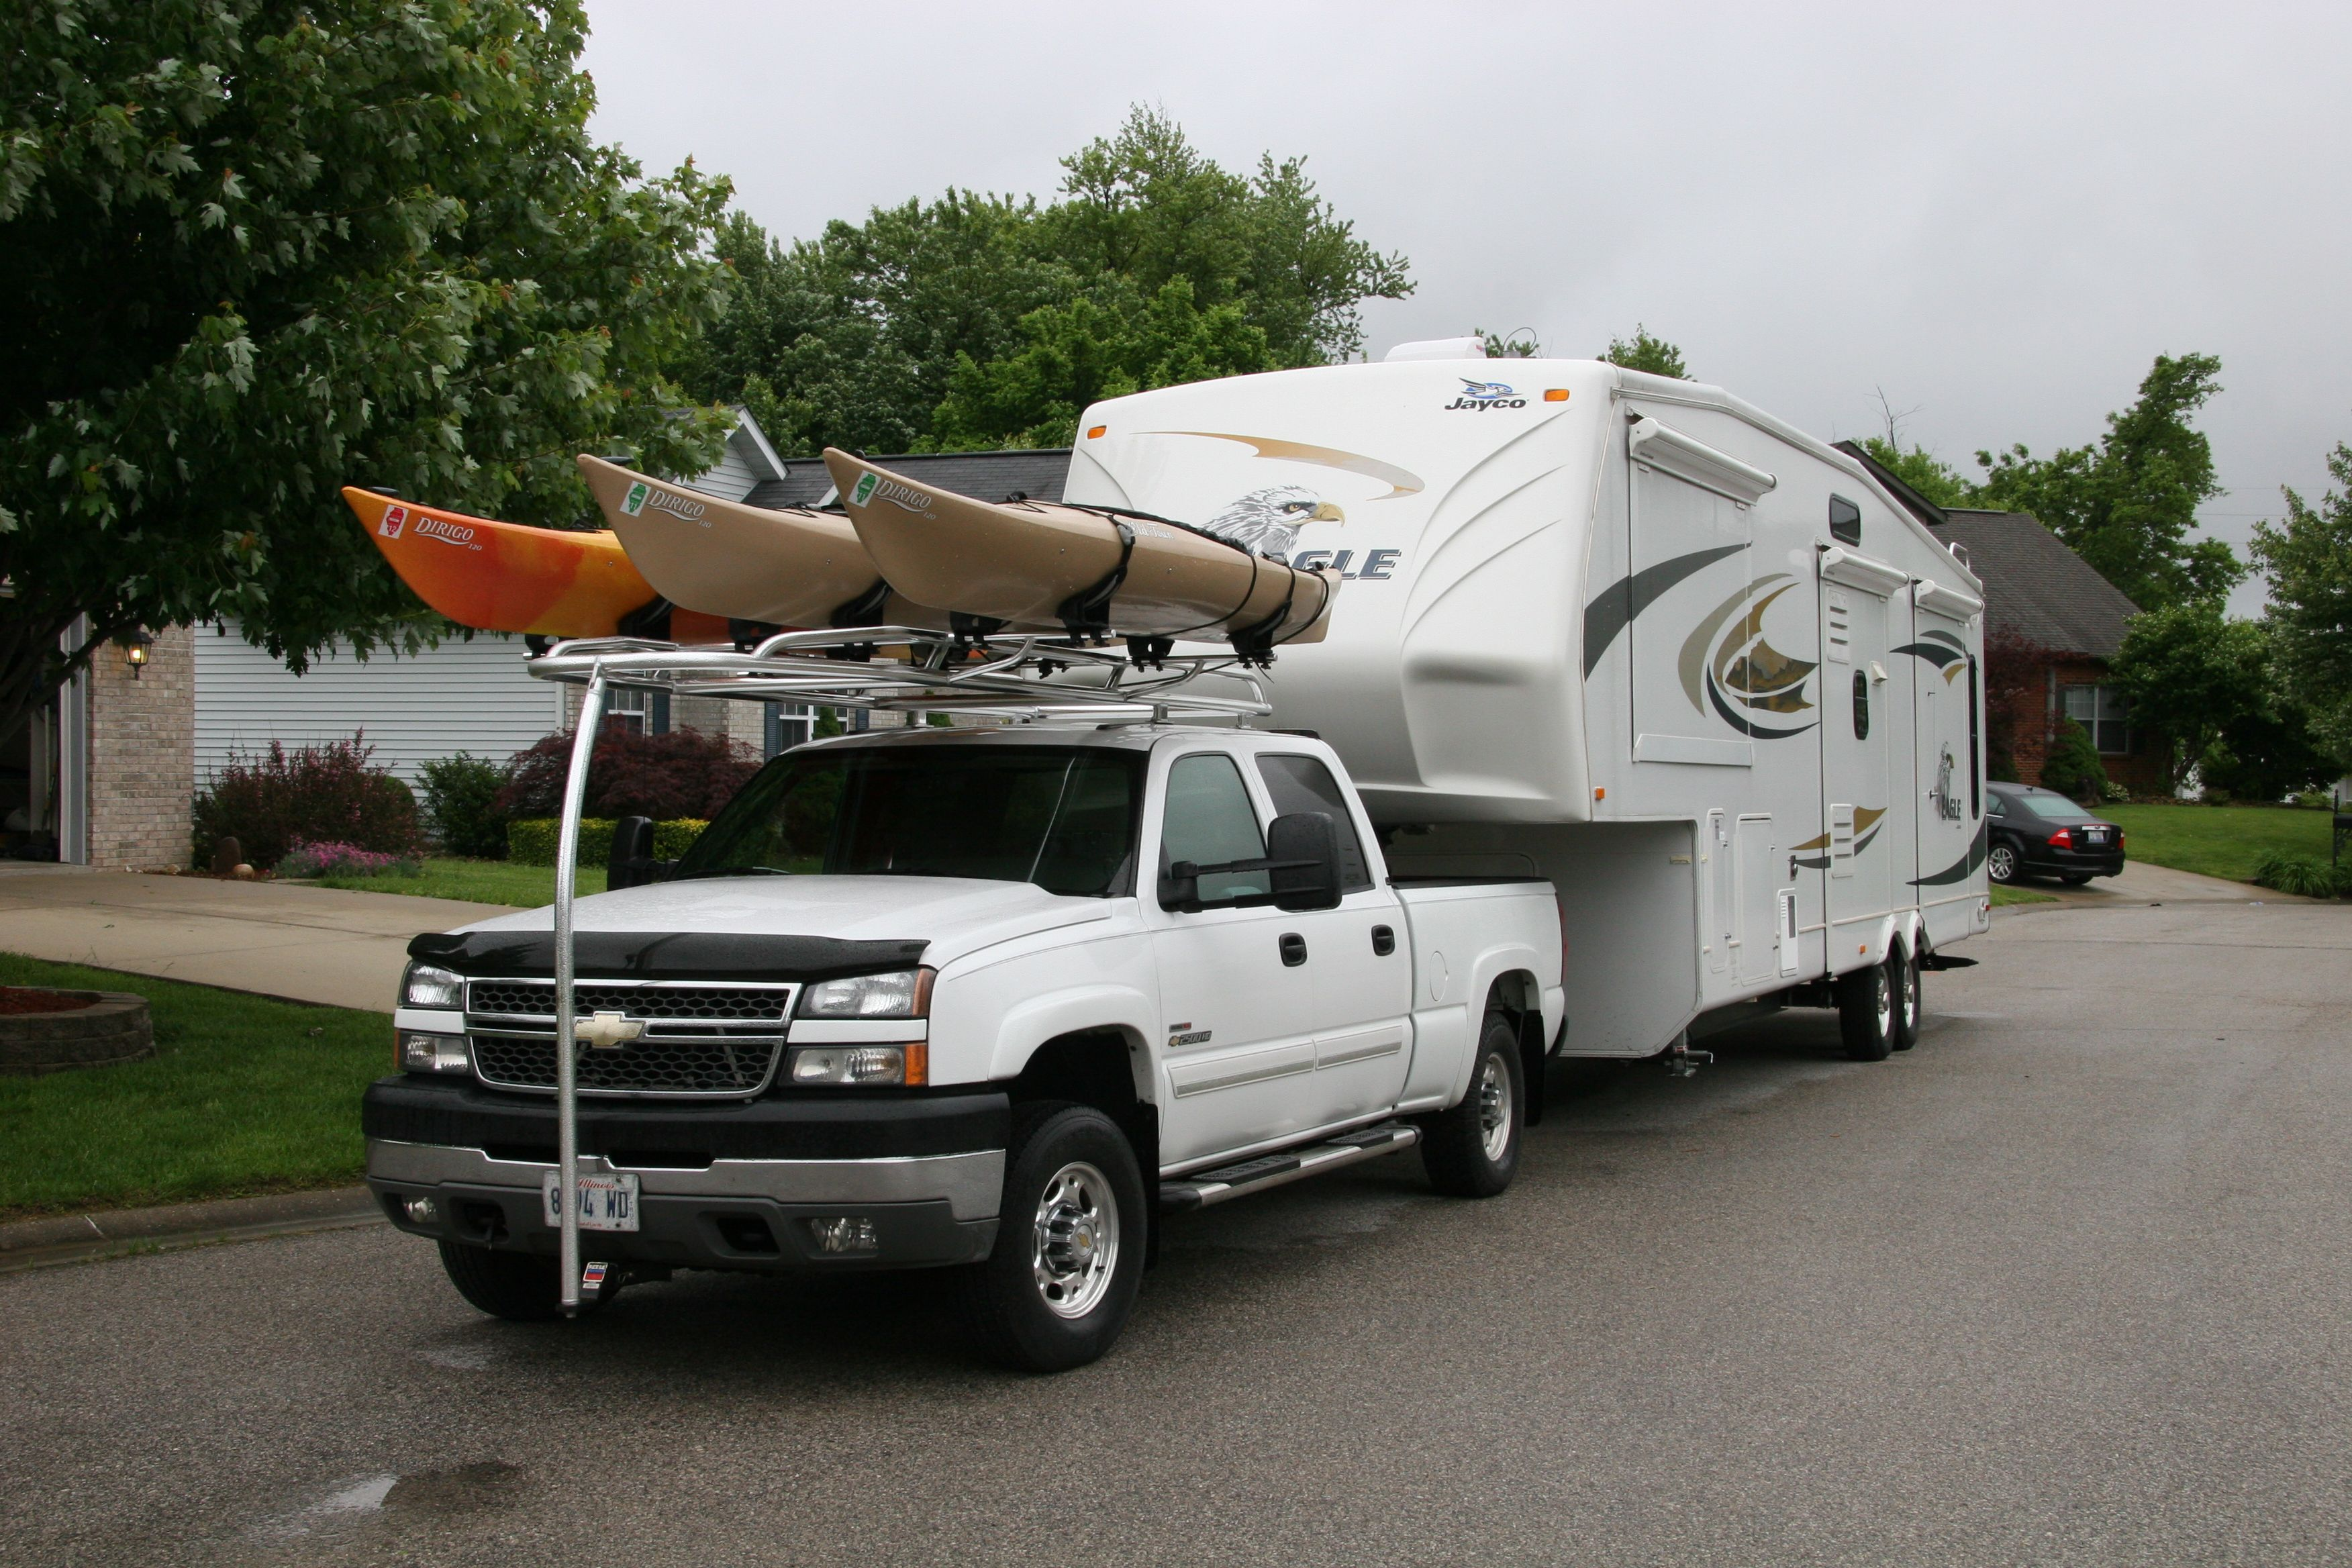 Kayak Rack For Truck With 5th Wheel Kayak Rack Kayak Rack For